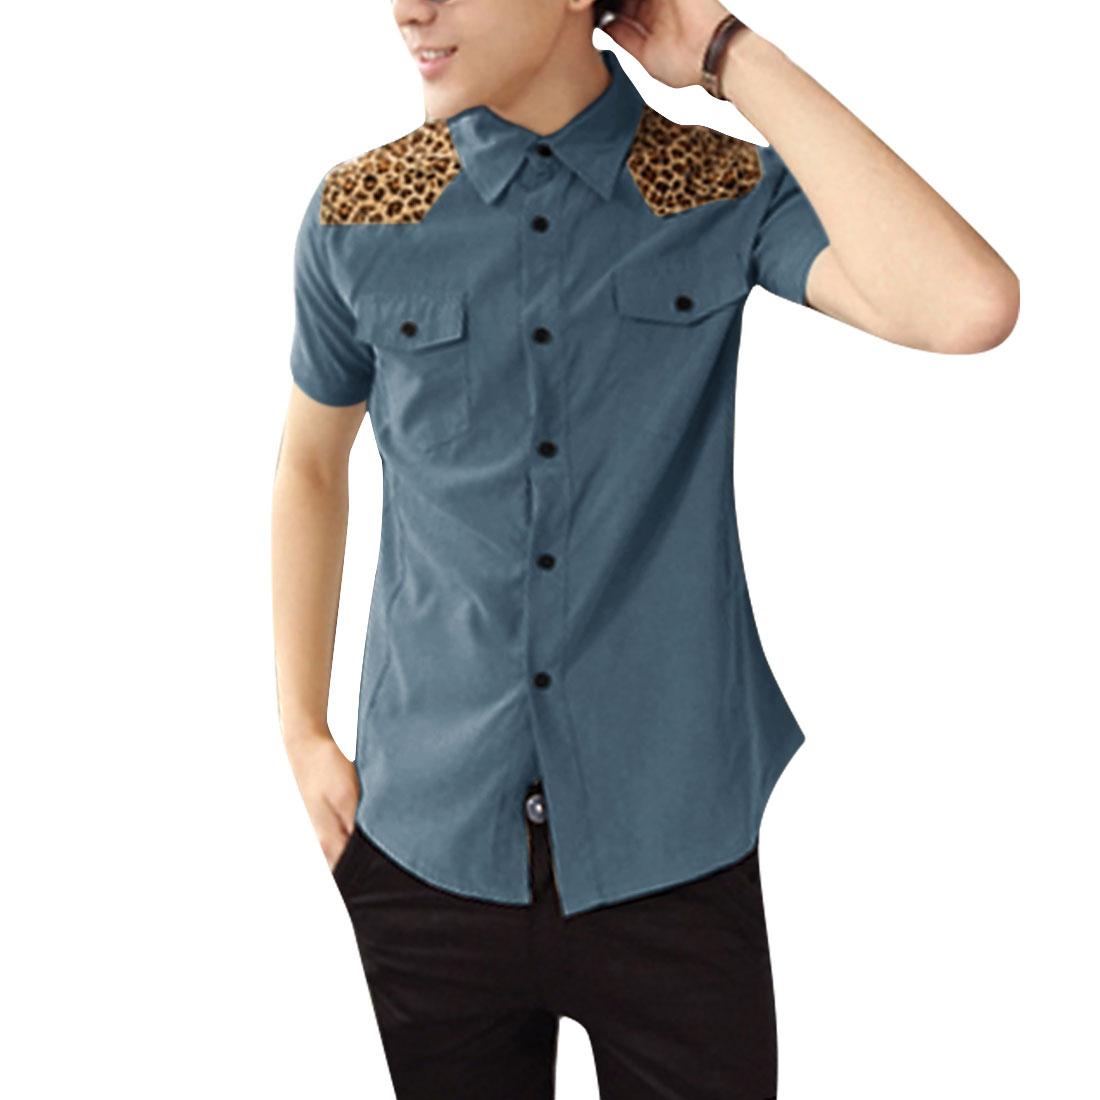 Men Single Breasted Buttons Front Leopard Pattern Tops Lake Blue S